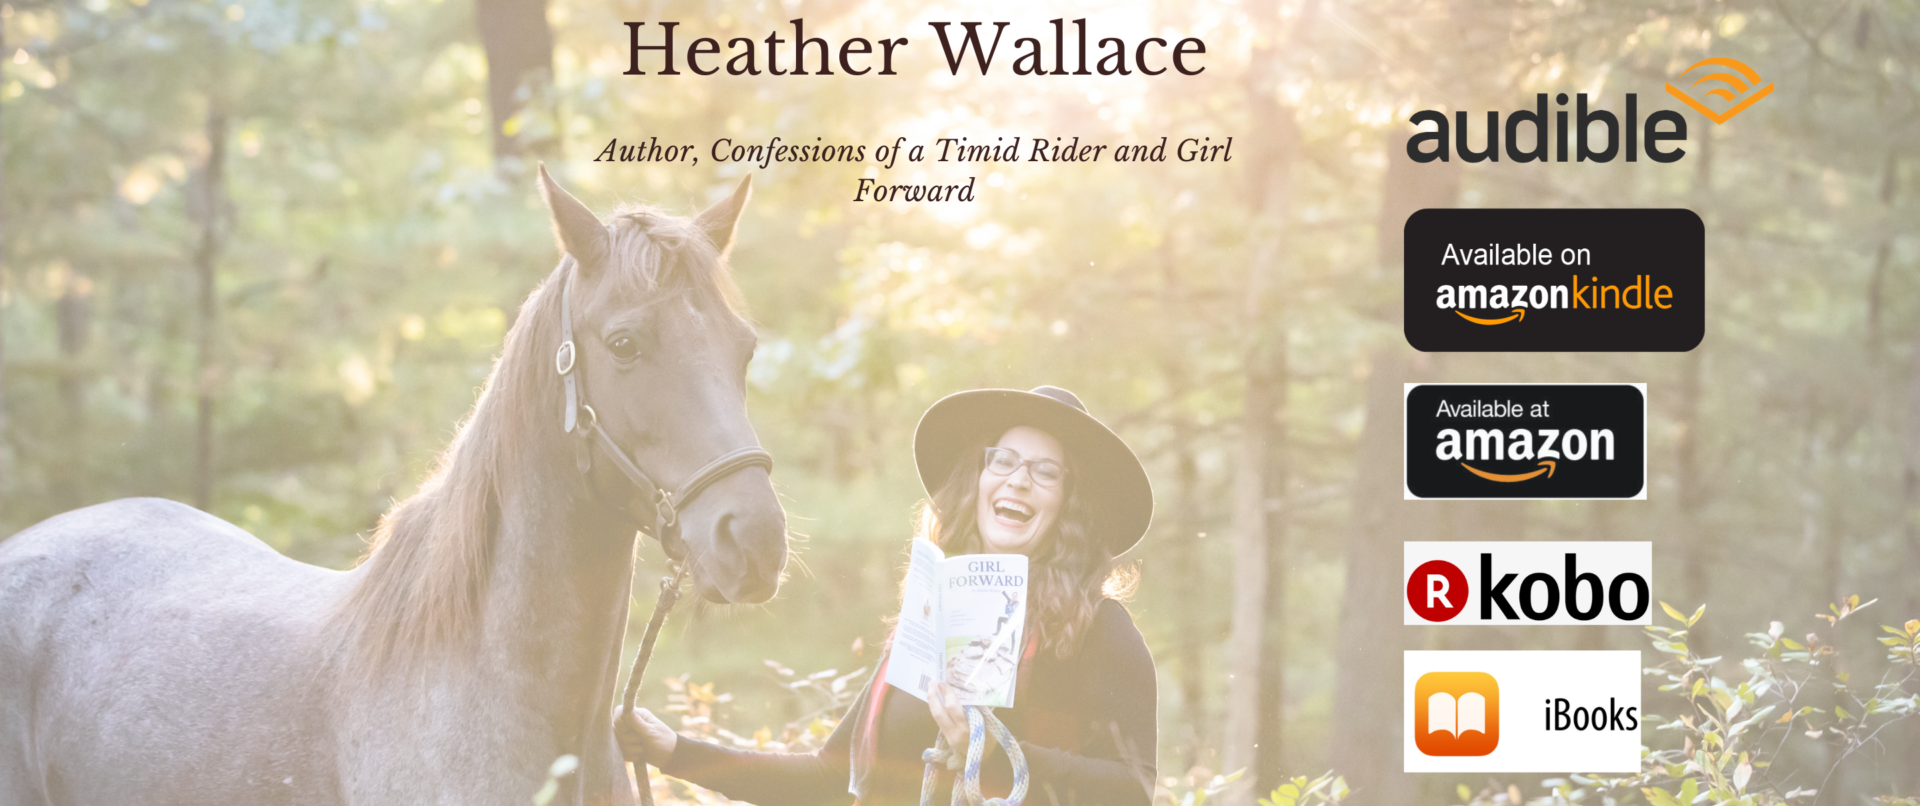 Heather Wallace